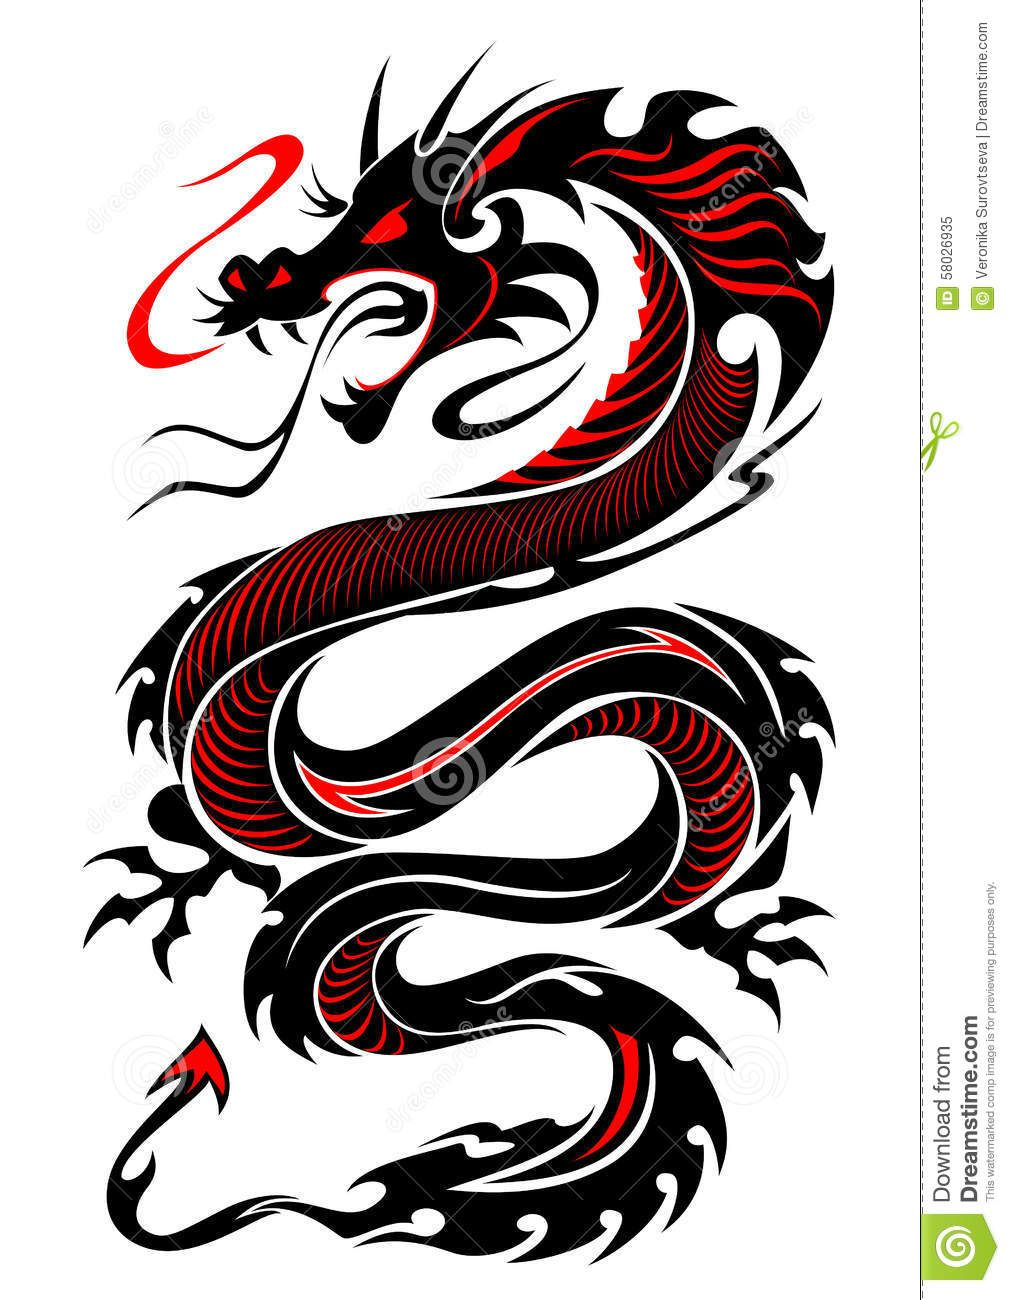 Pin By Maria Sopher On Dragons Dragon Tattoos For Men Red Dragon Tattoo Tribal Dragon Tattoo